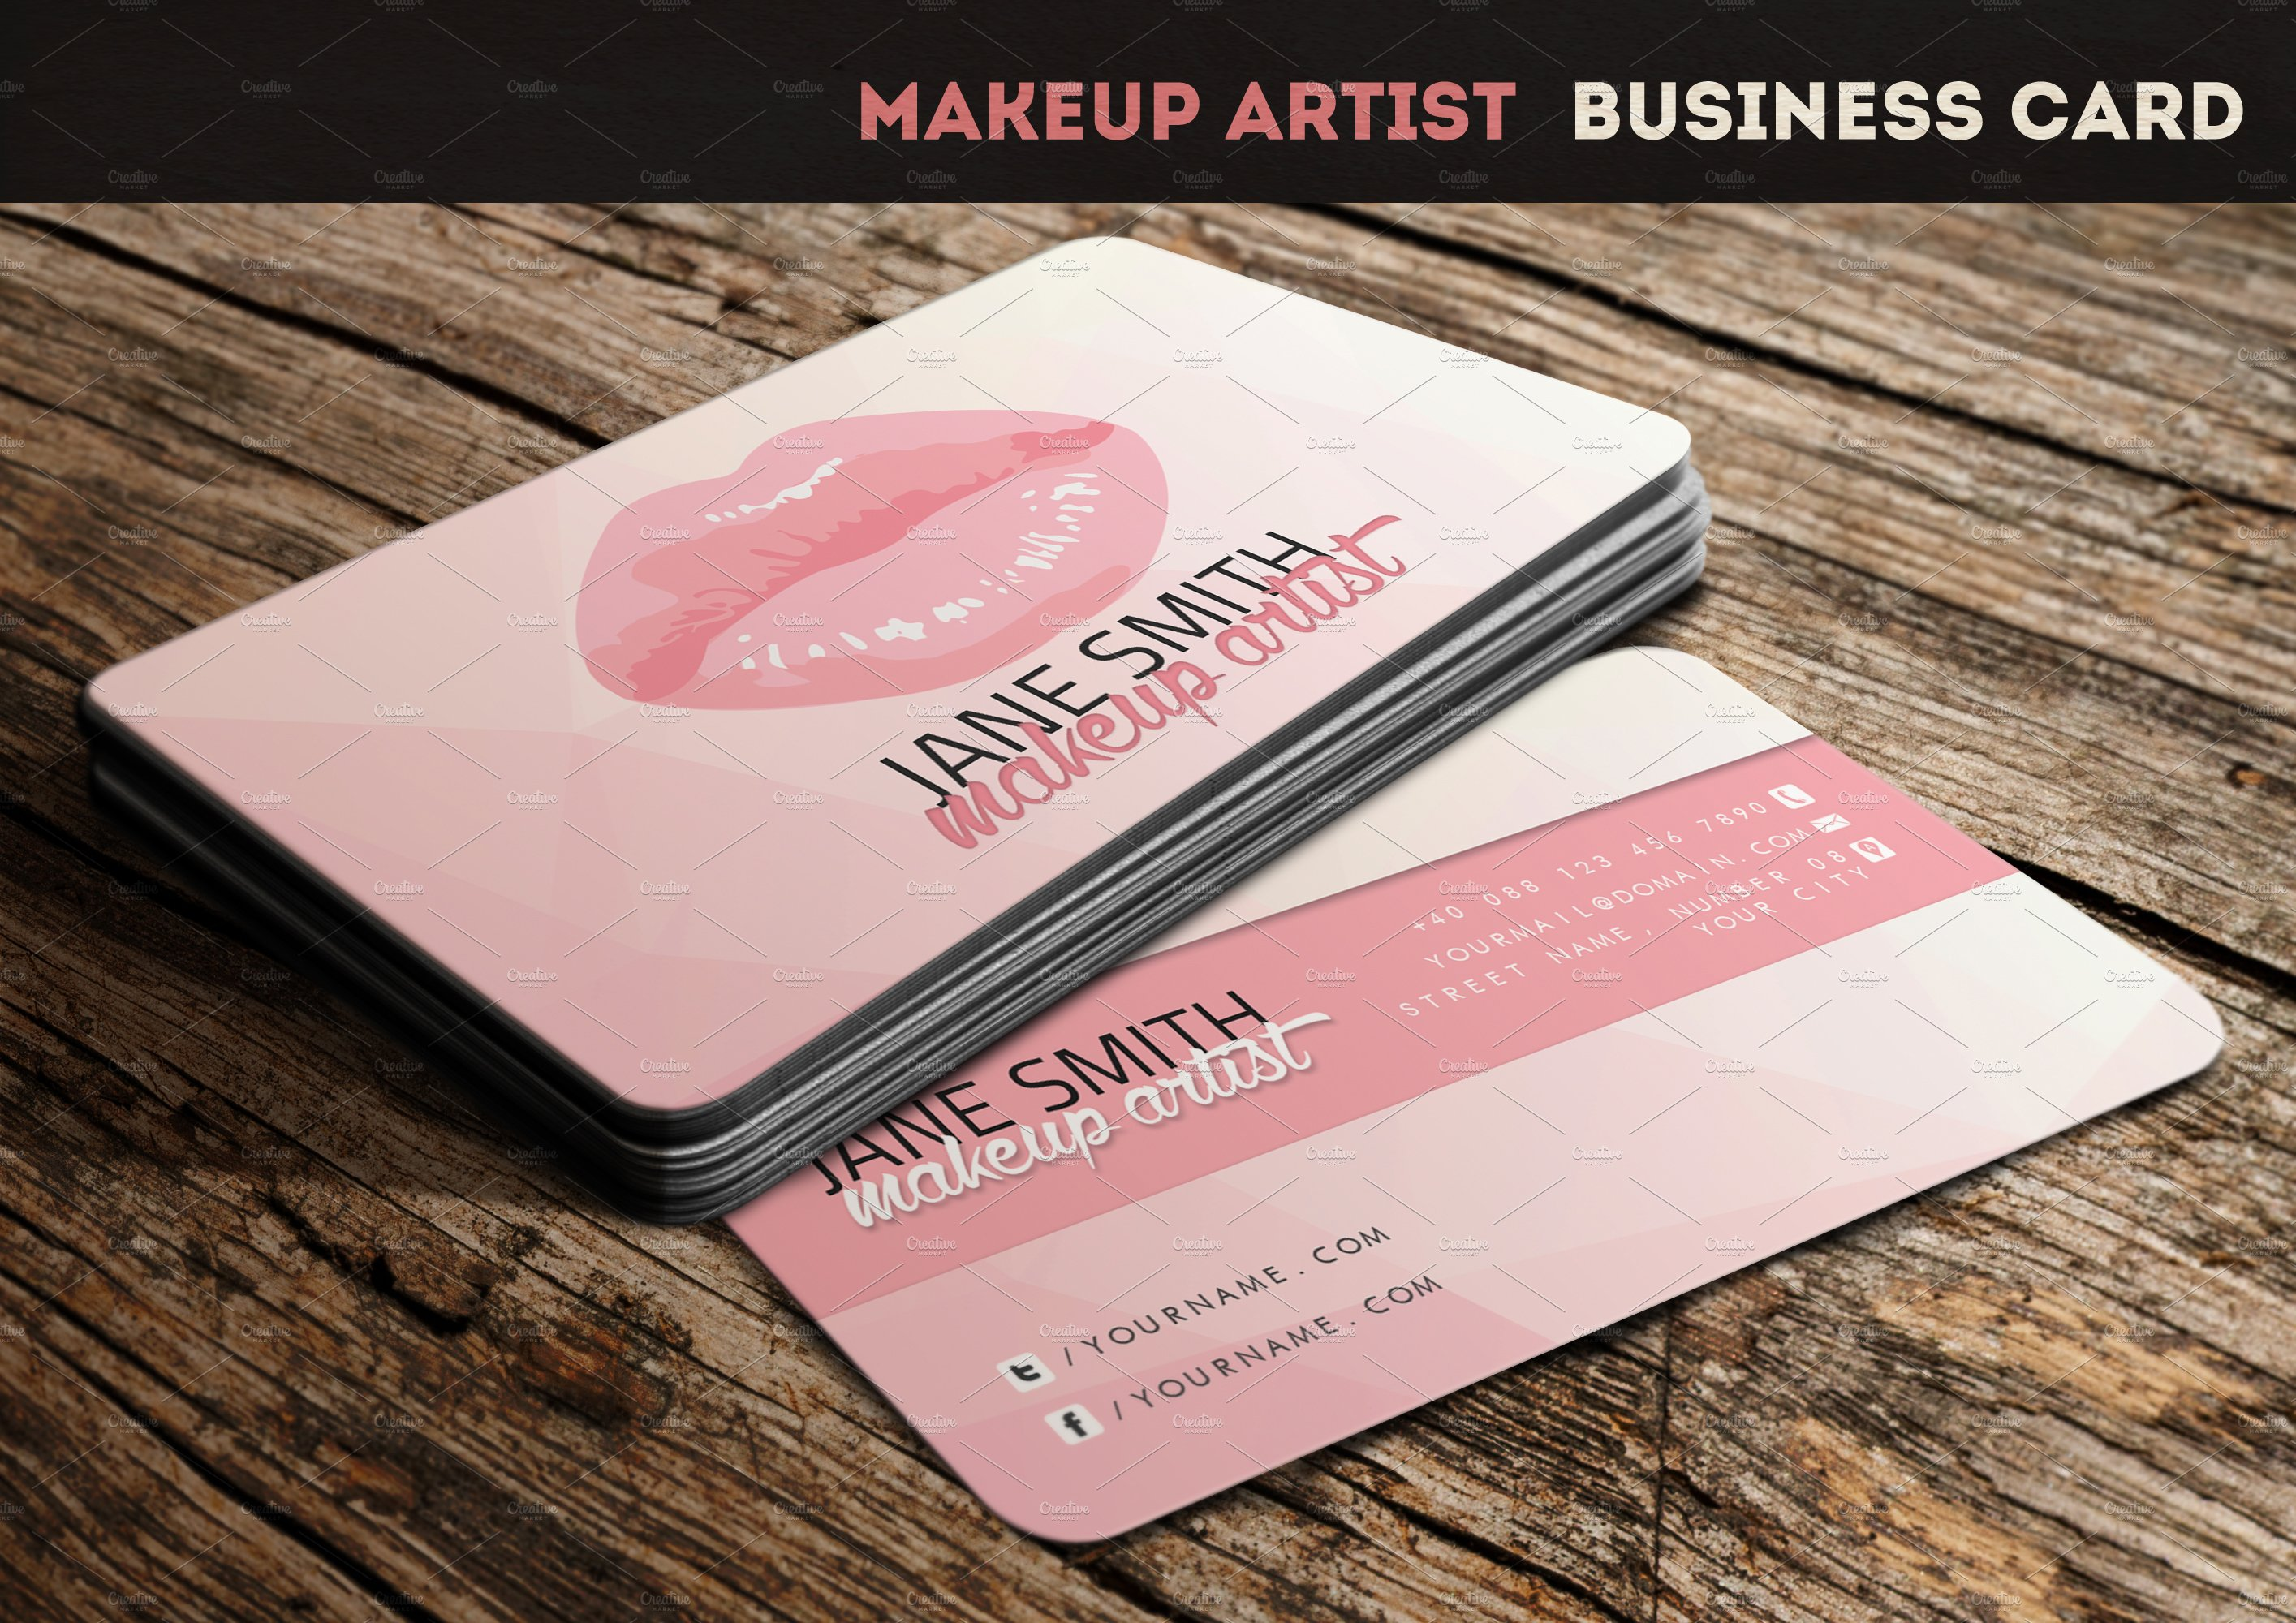 artist business card - Etame.mibawa.co